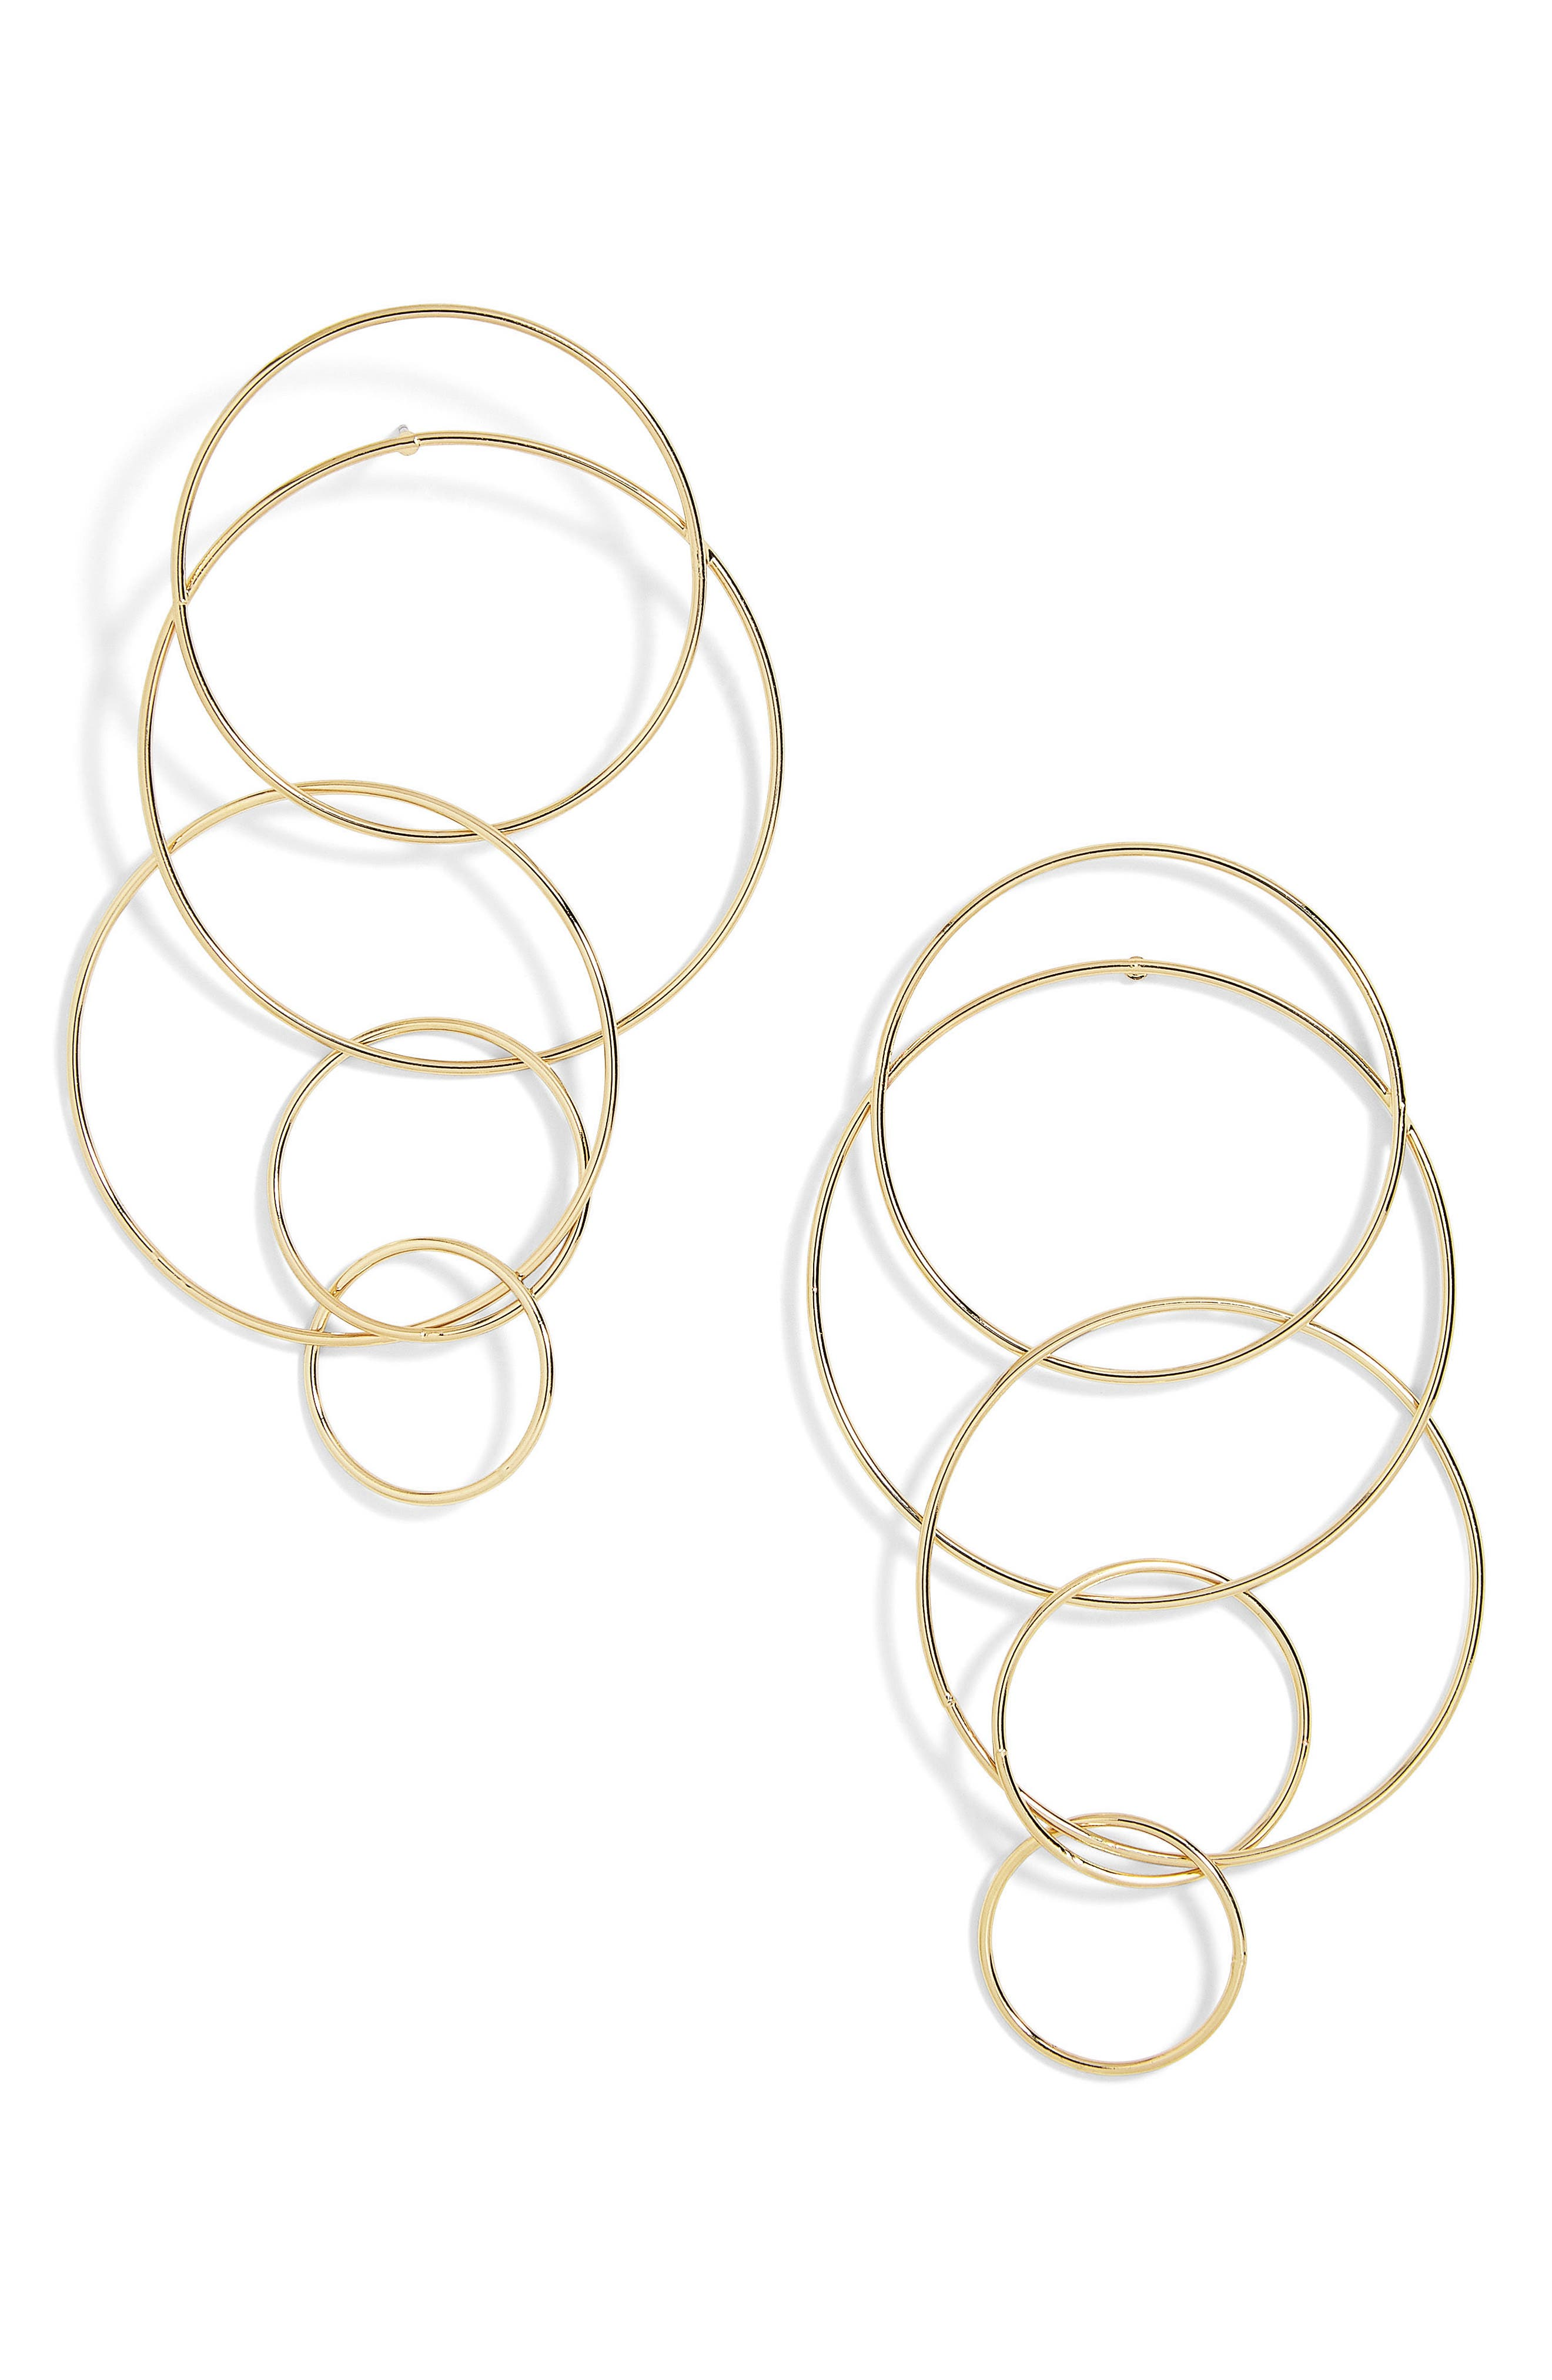 Mixed Size Layered Hoop Earrings,                             Main thumbnail 1, color,                             Gold